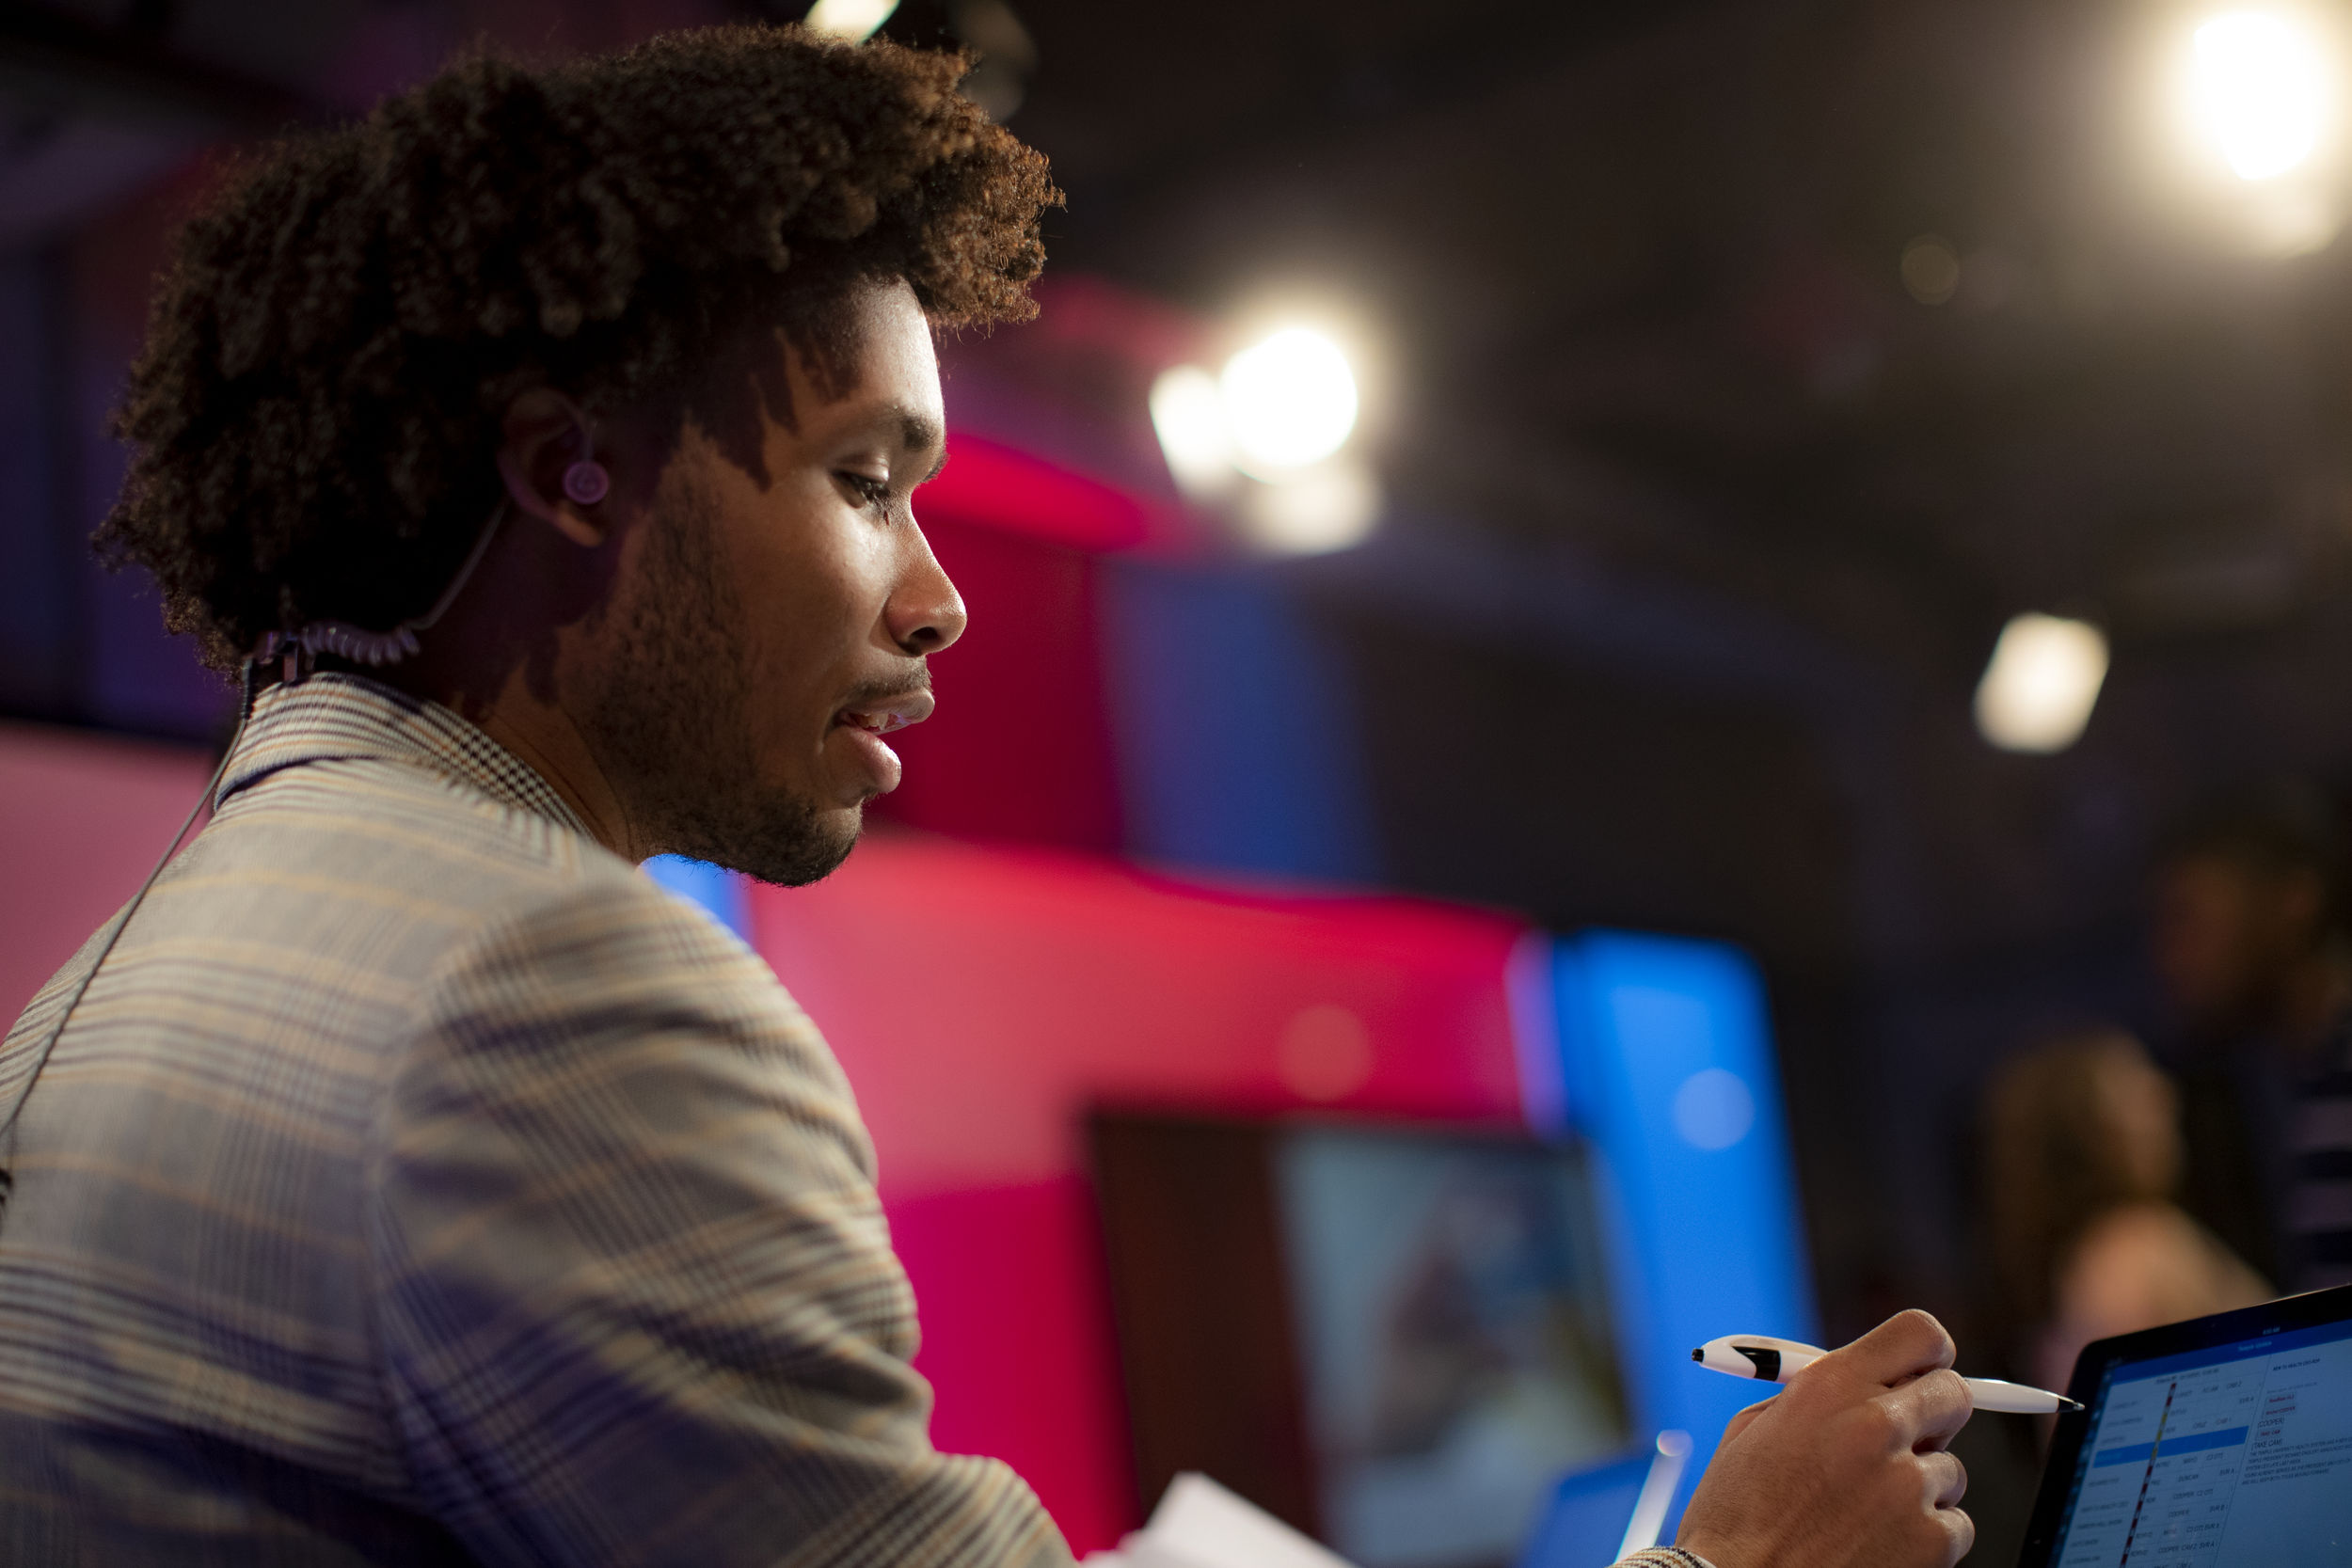 A Klein College of Media and Communications student works in the studio during a class.